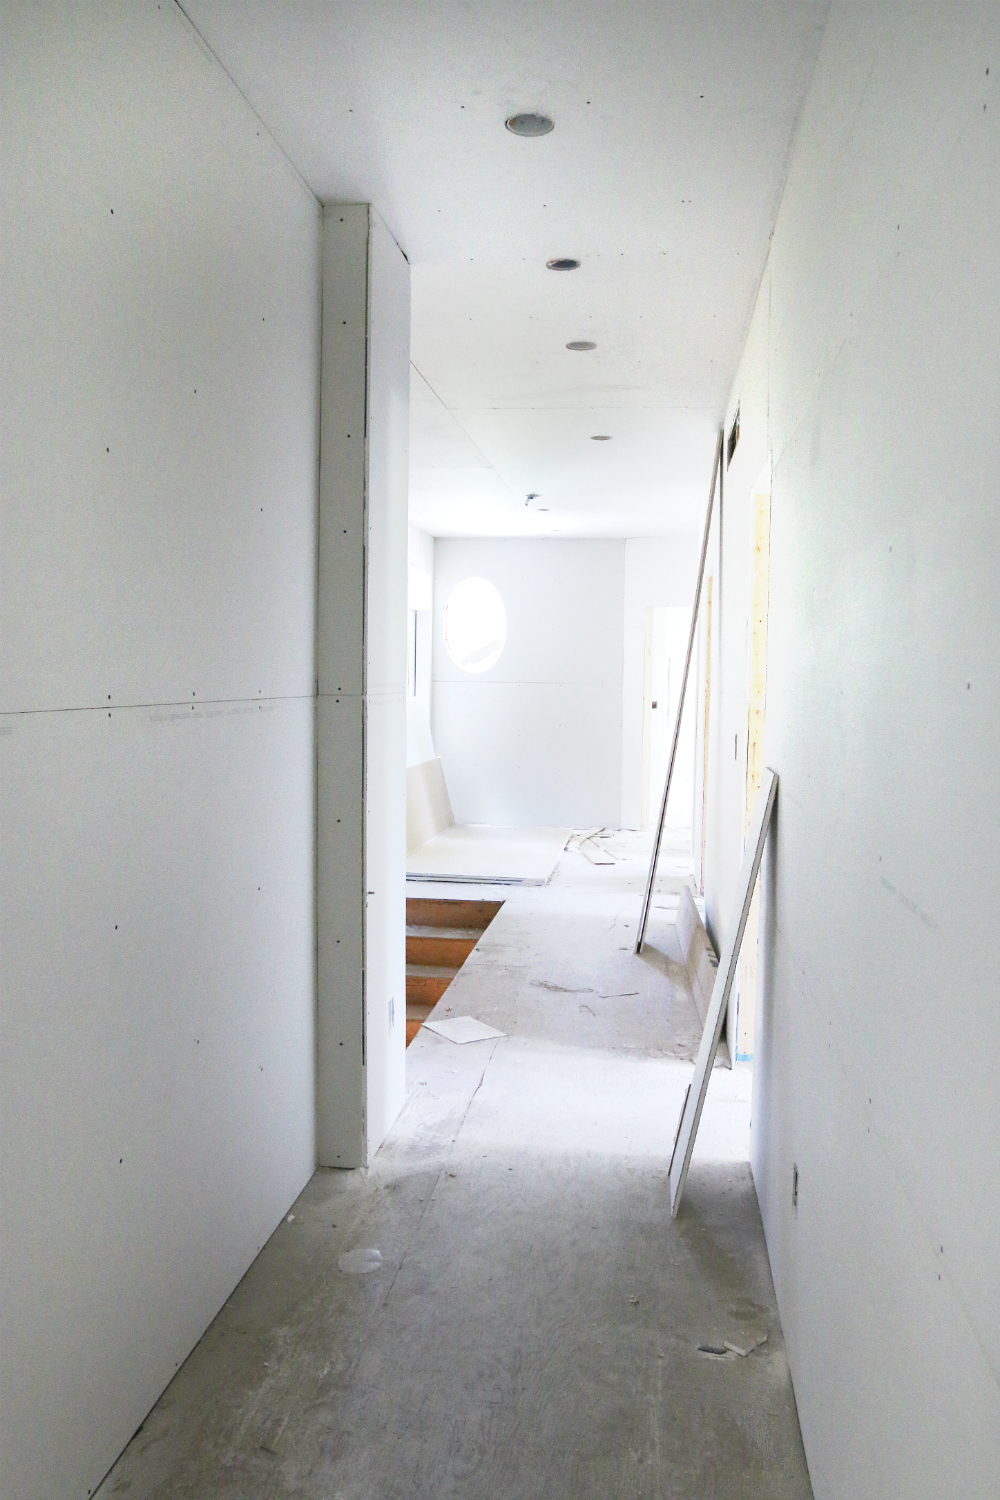 Building Series: Dry Wall Hallway